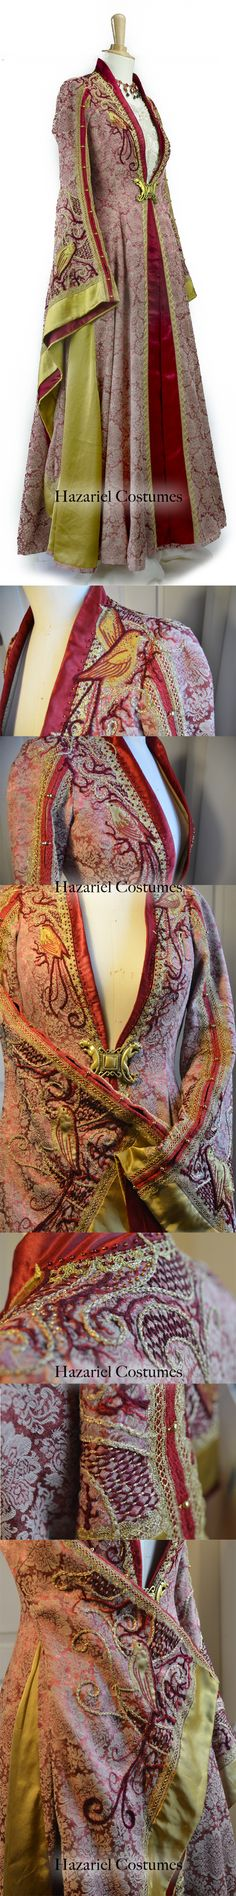 Handmade unique medieval embroidered dress, inspired by Cersei Lannister in Game of Thrones. Made by Hazariel   www.facebook.com/HazarielCostumes